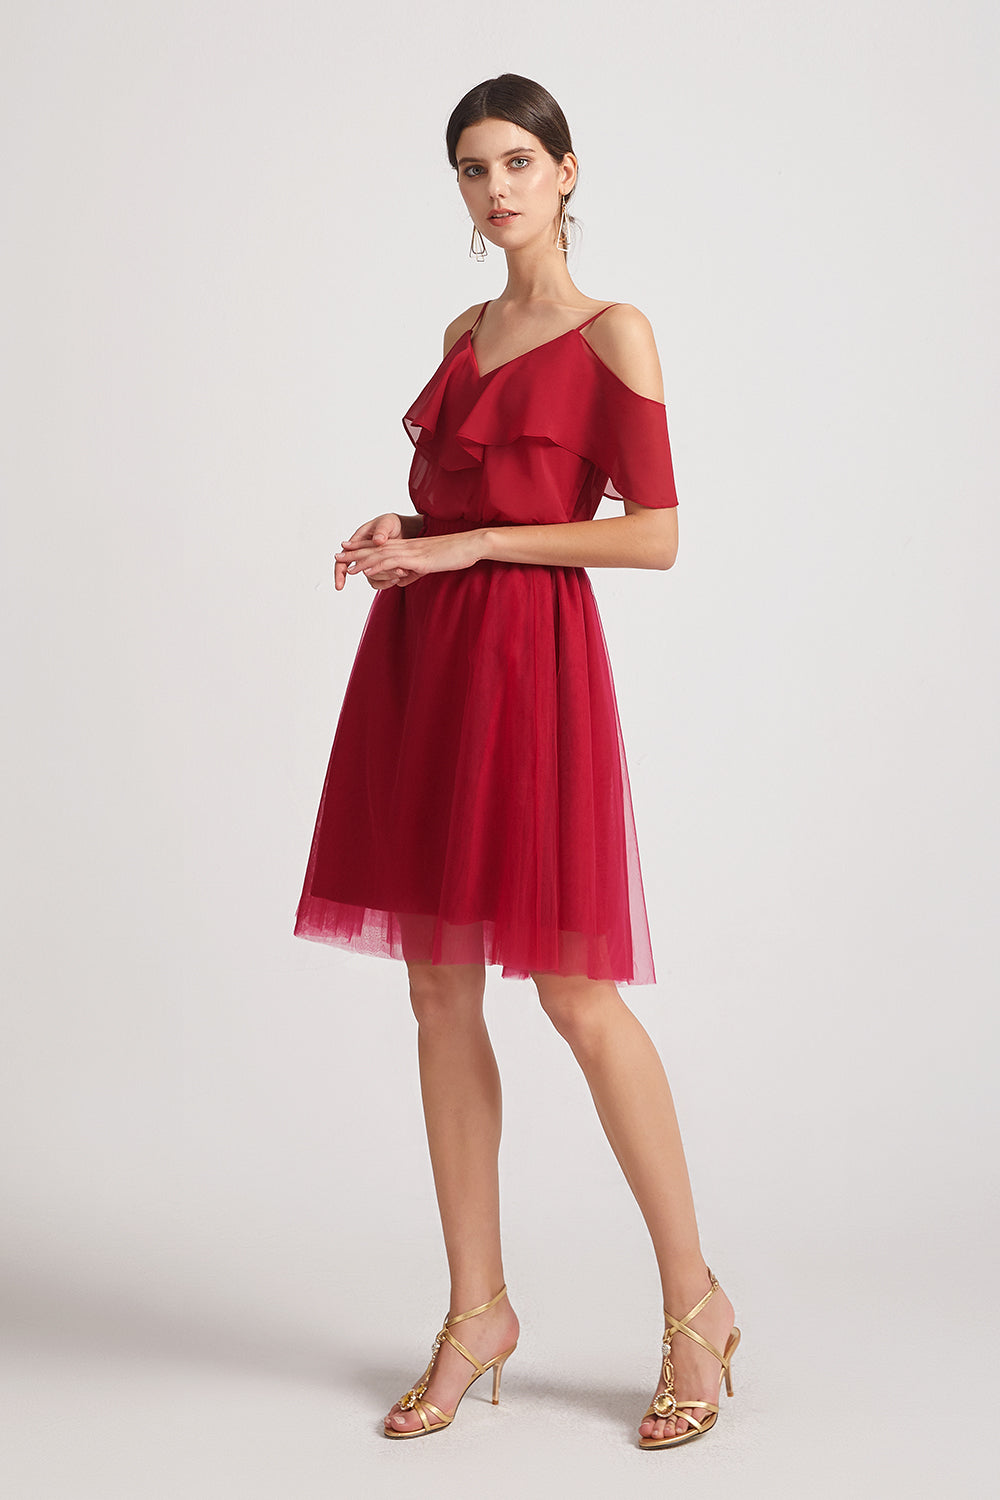 a-line red short bridesmaid gowns